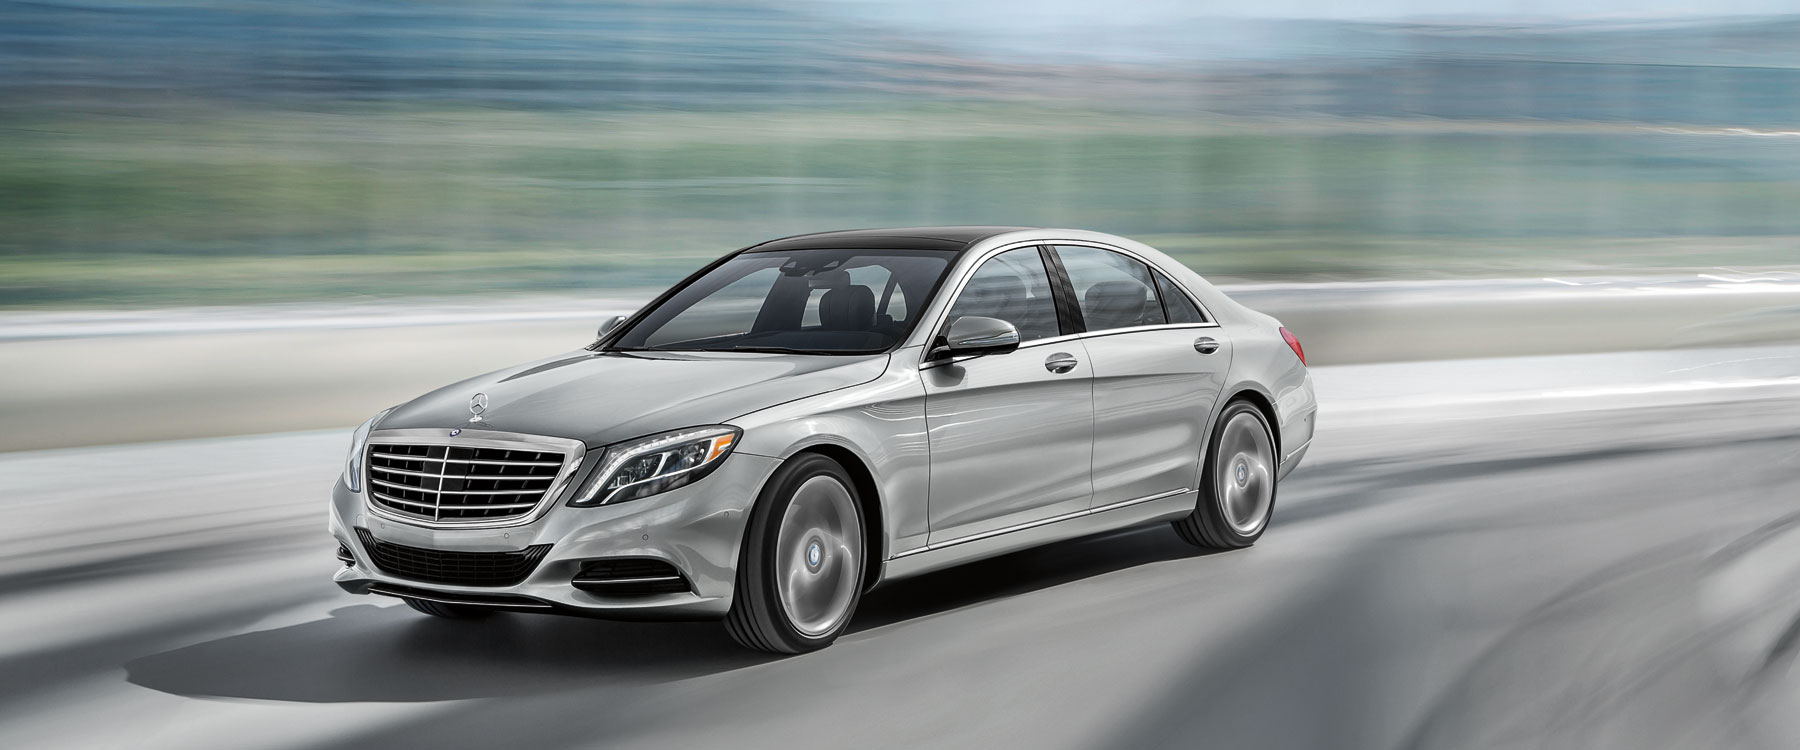 The luxe and efficient 2017 mercedes benz s 550 plug in hybrid for 2017 mercedes benz s550 plug in hybrid